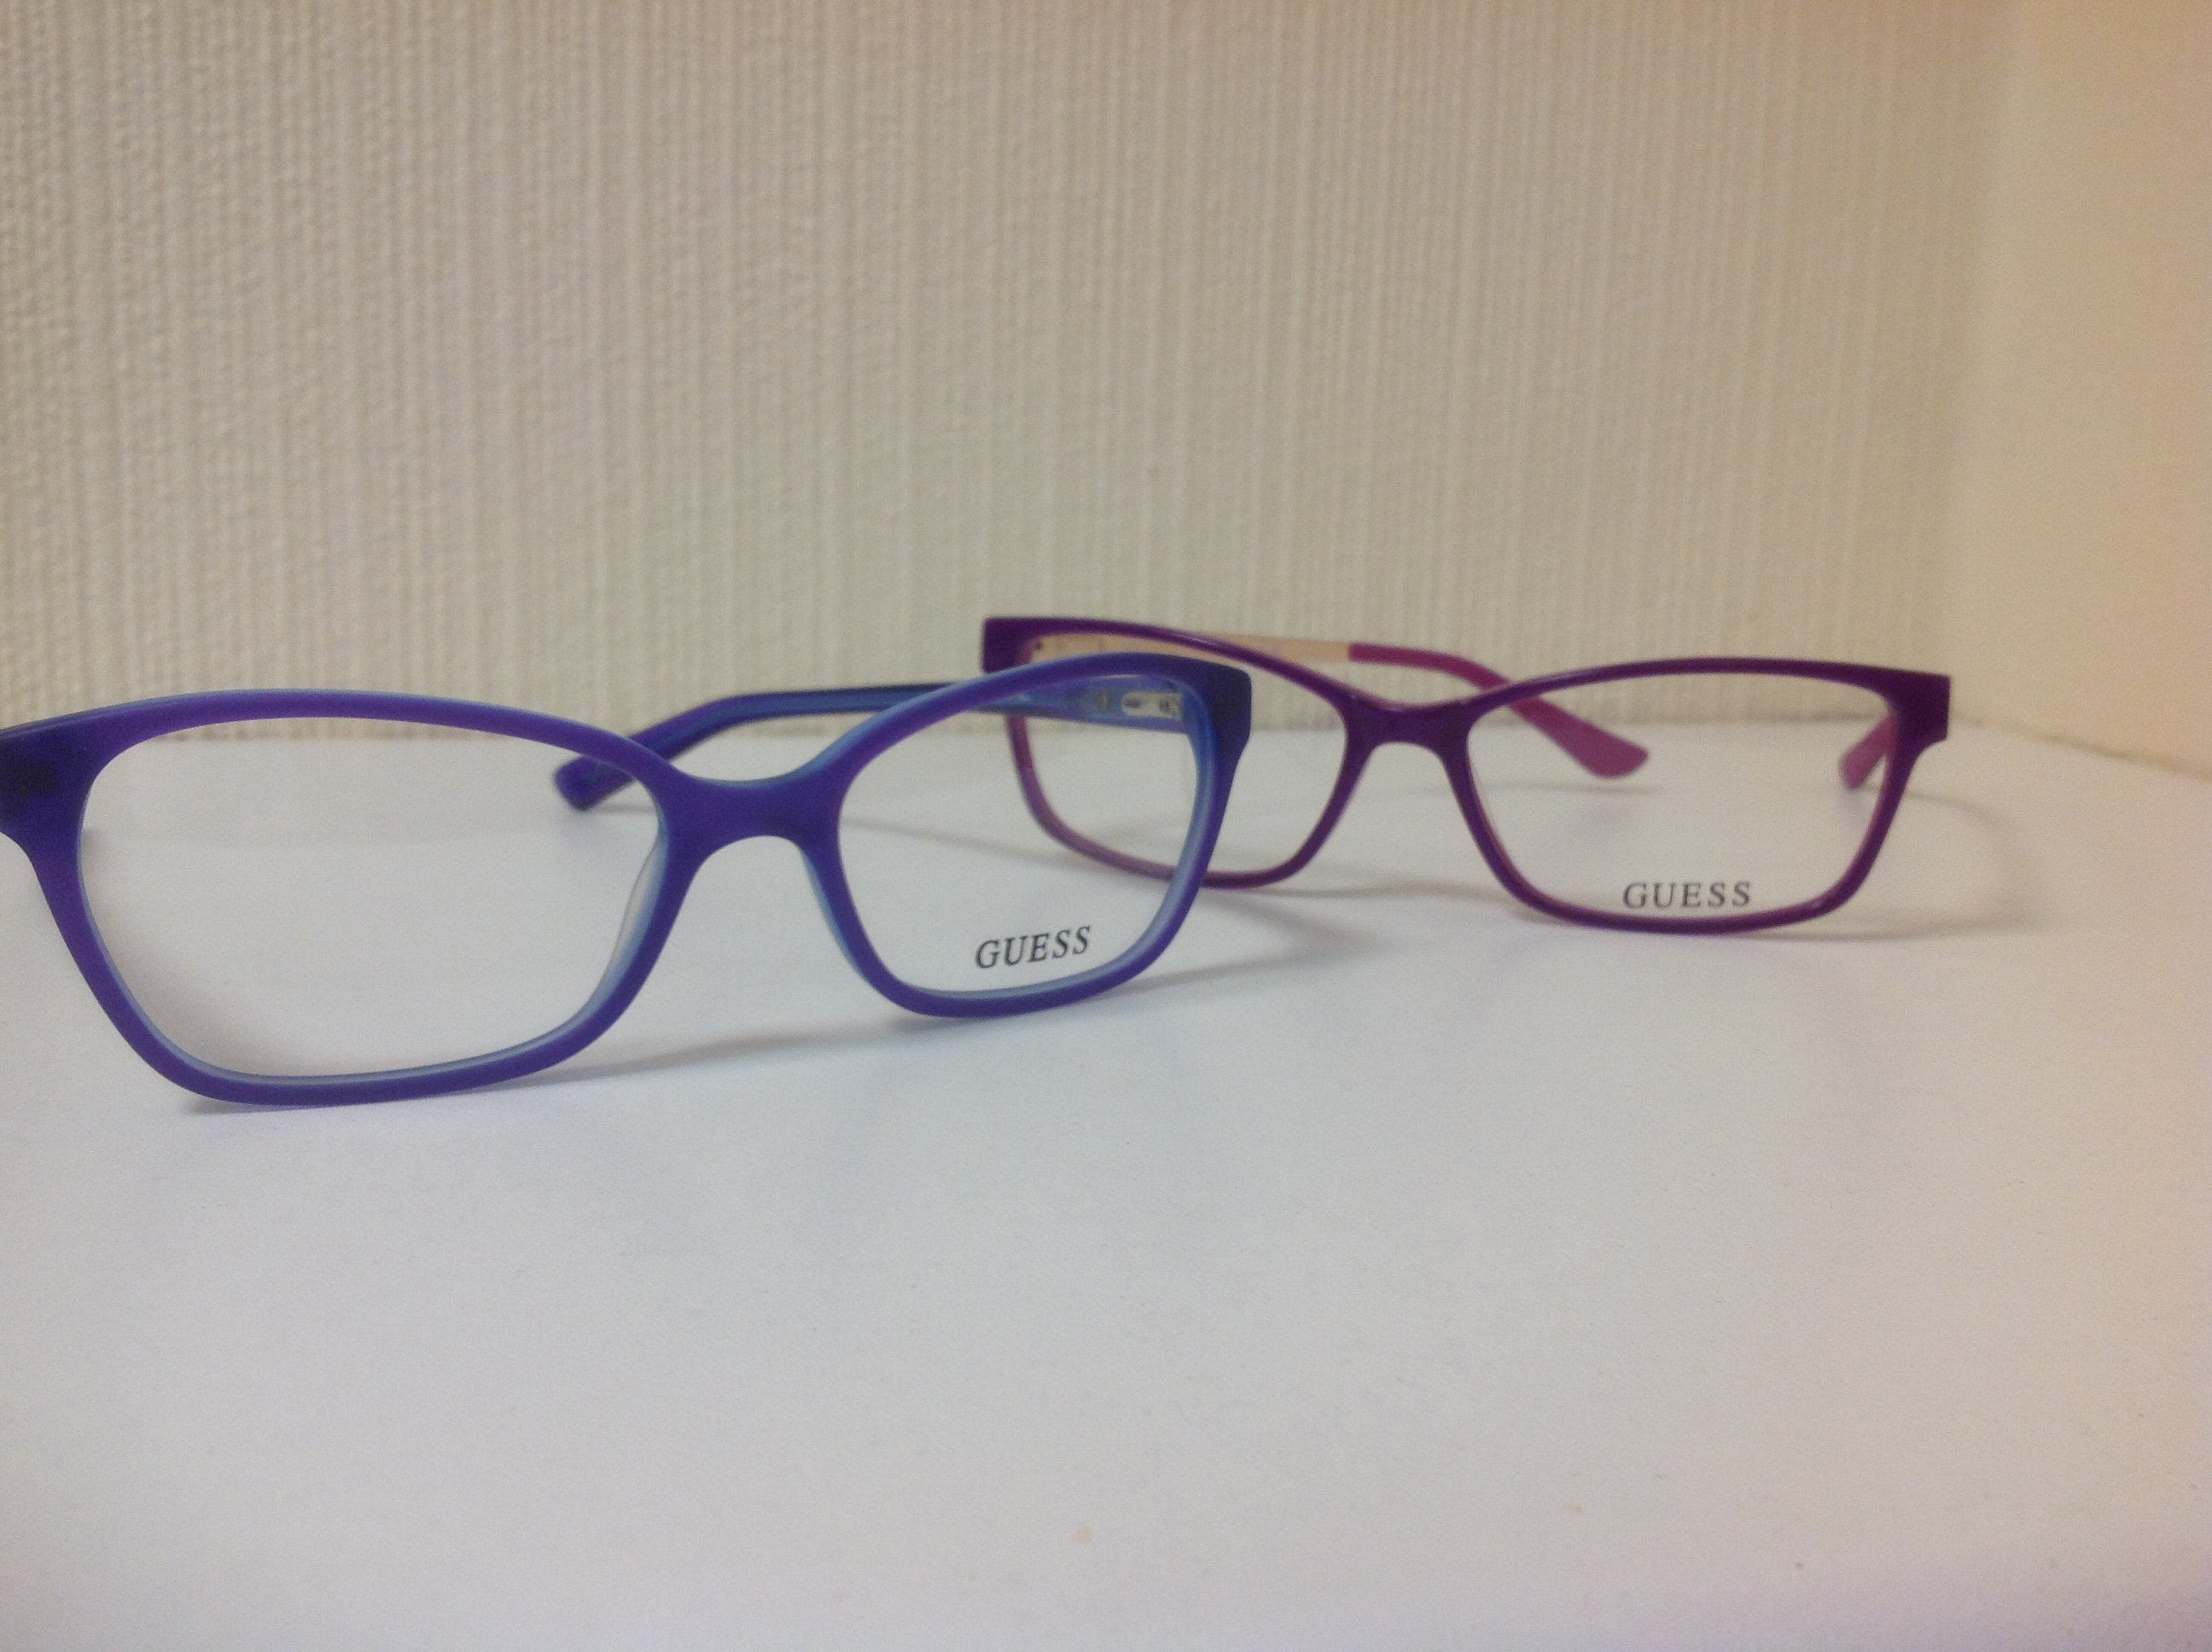 Two pairs of Guess glasses with blue and purple frames